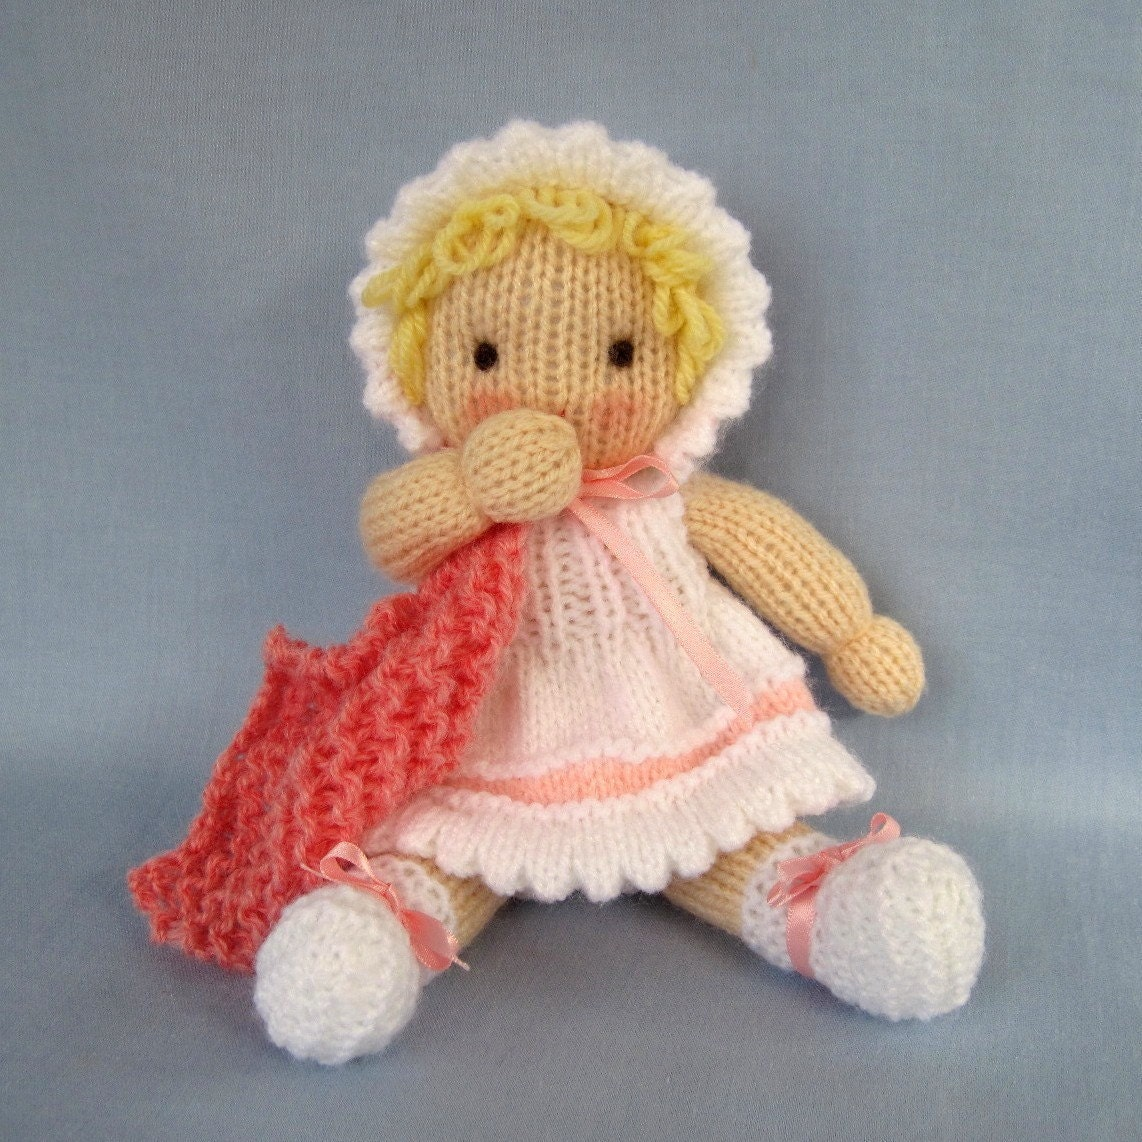 Easy Knitting Patterns Toys : LITTLE DAISY knitted toy baby doll PDF email by dollytime